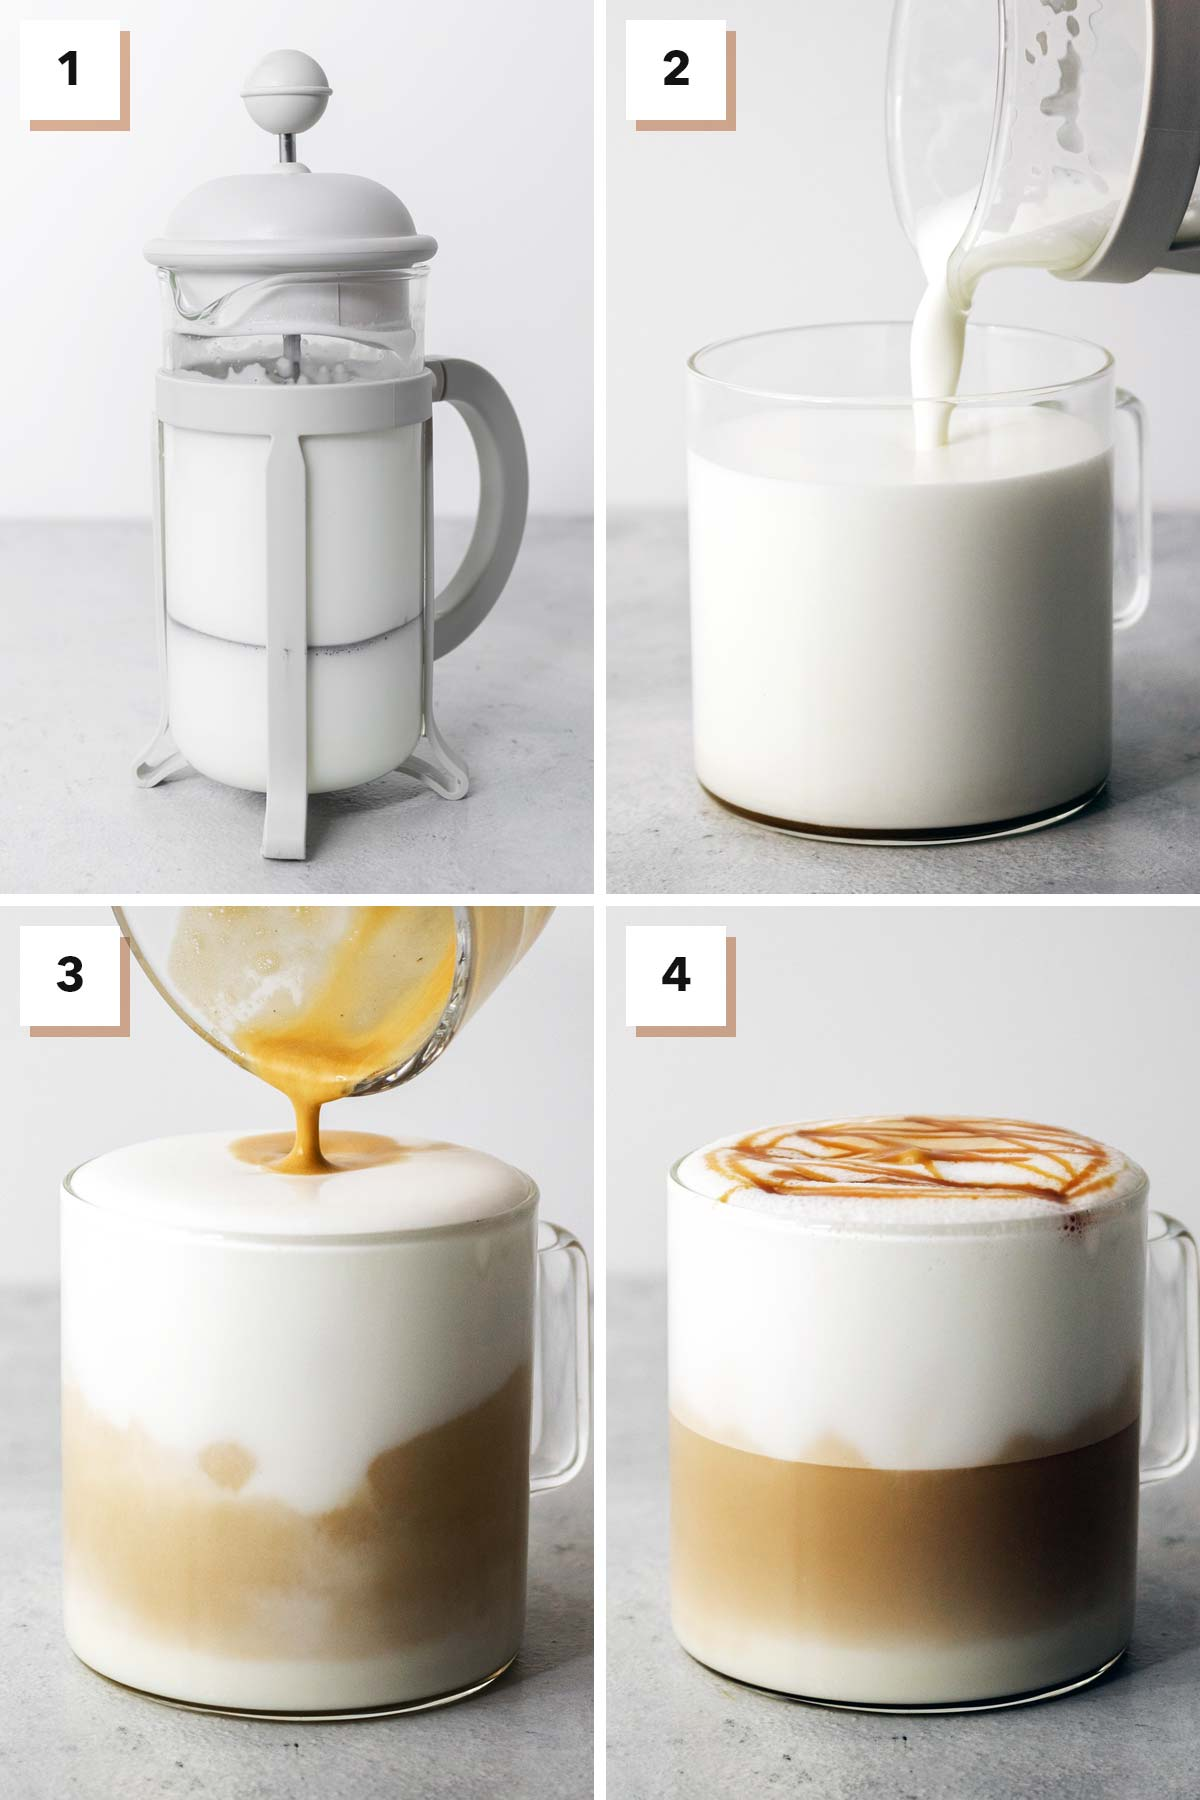 Four photo collage with steps to make Caramel Macchiato.